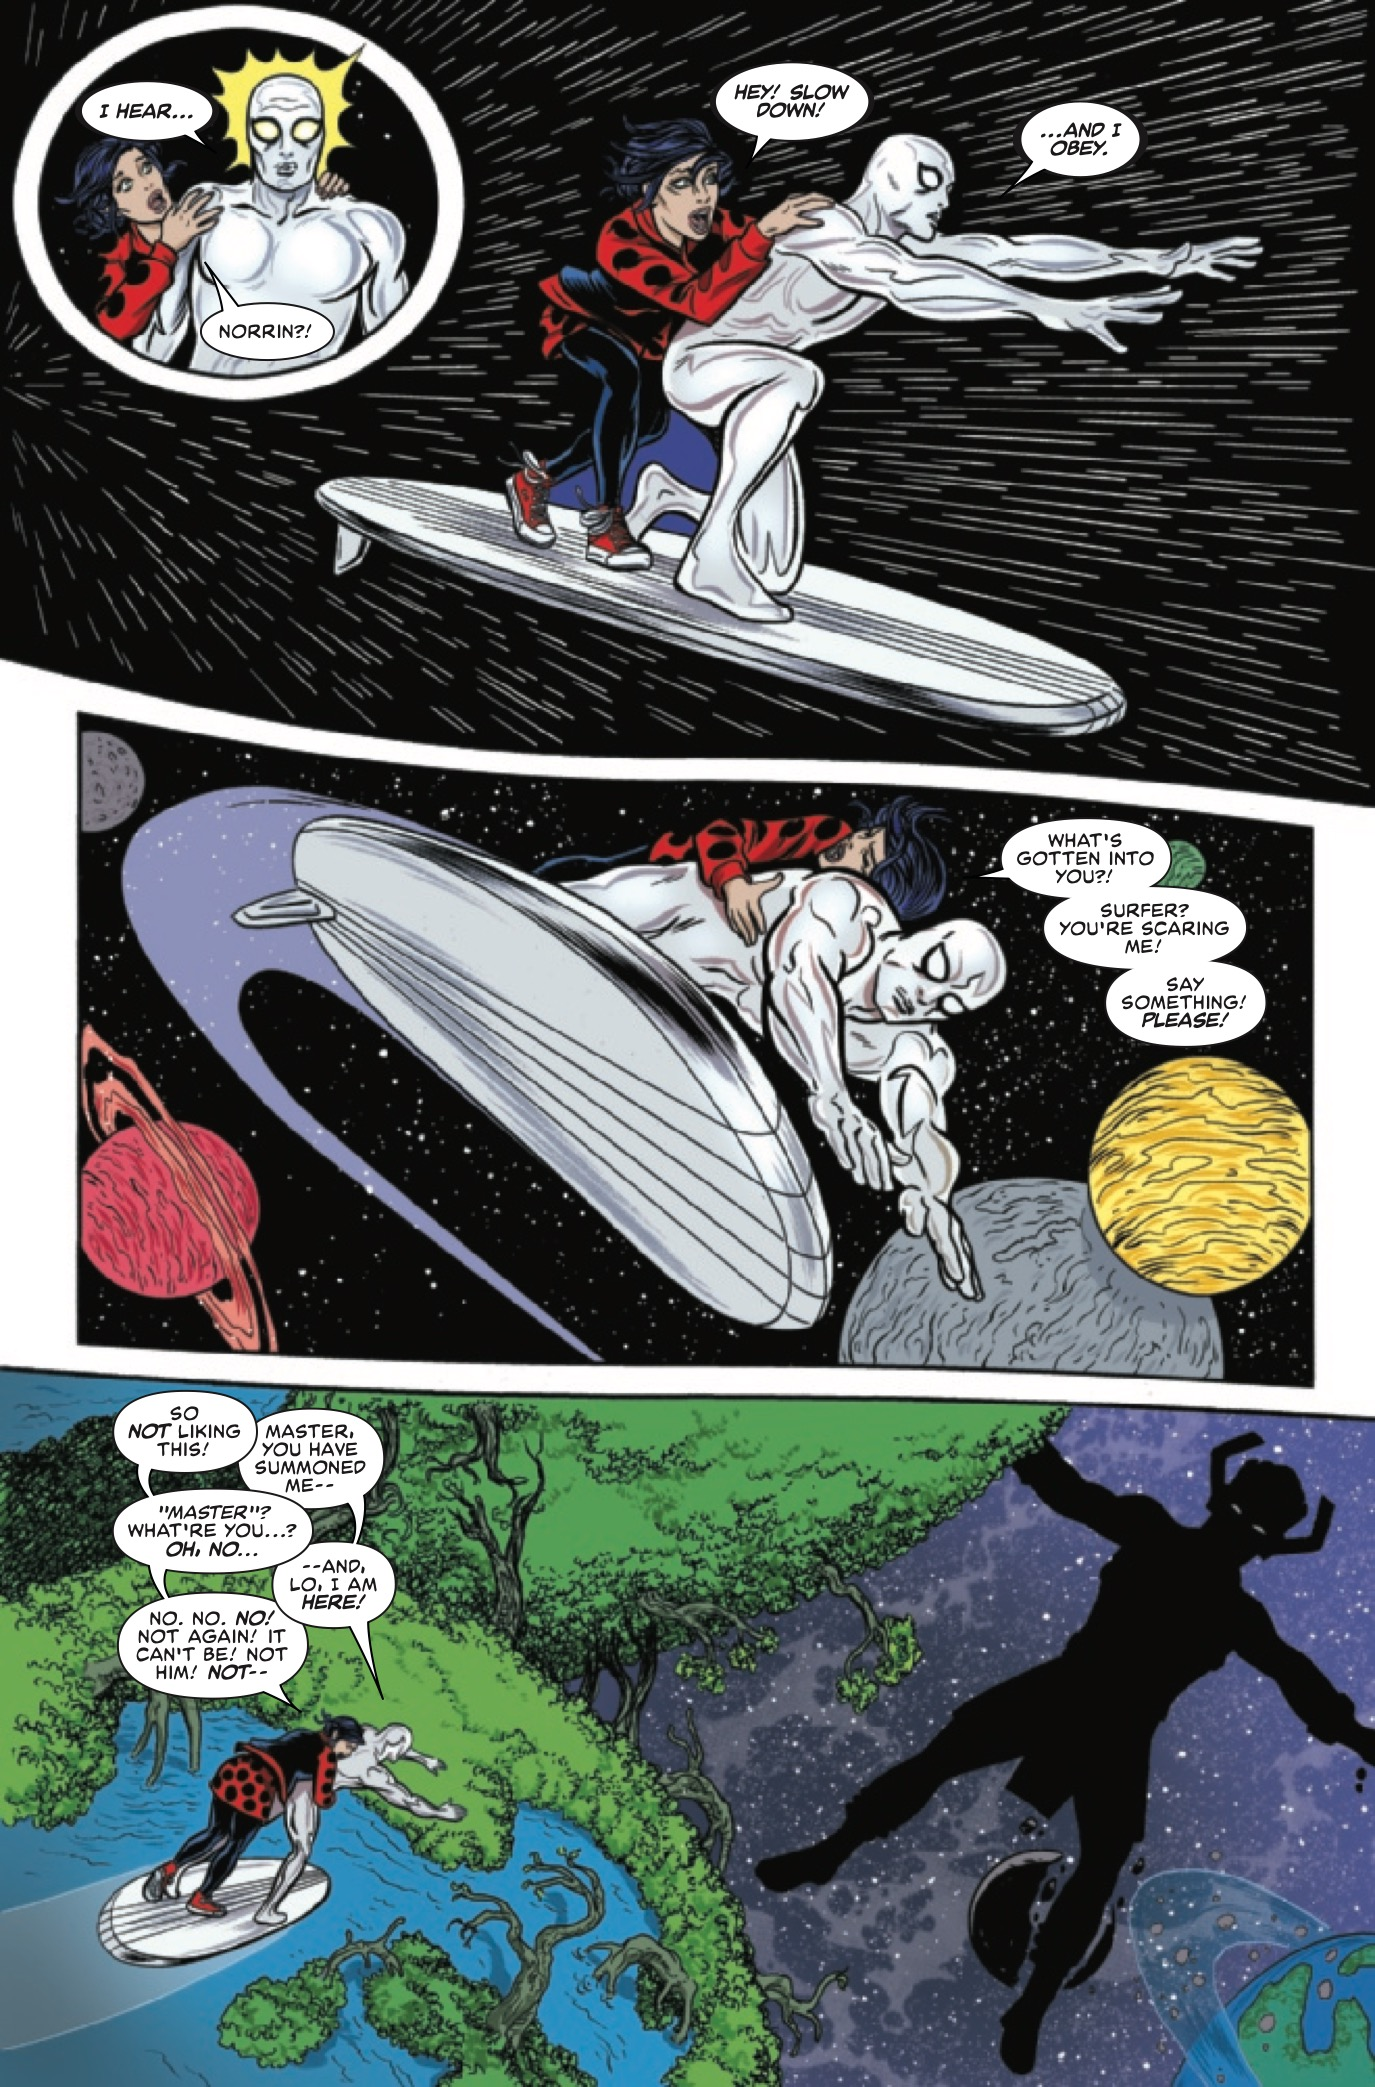 Silver Surfer #10 Review